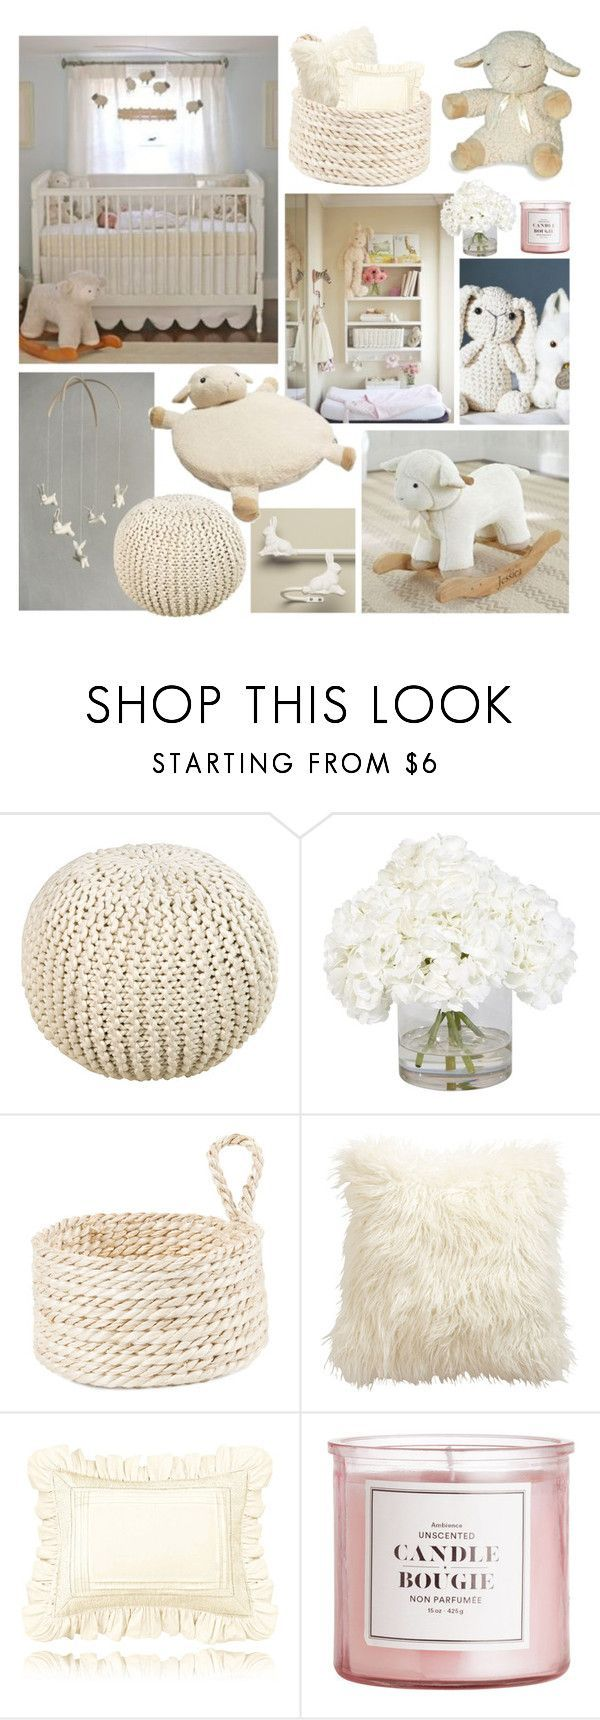 """Bunnies & Sheep Nursery"" by hellobrit ❤ liked on Polyvore featuring interior, interiors, interior design, home, home decor, interior decorating, Surya, Ethan Allen, Zara Home and Thos. Baker"